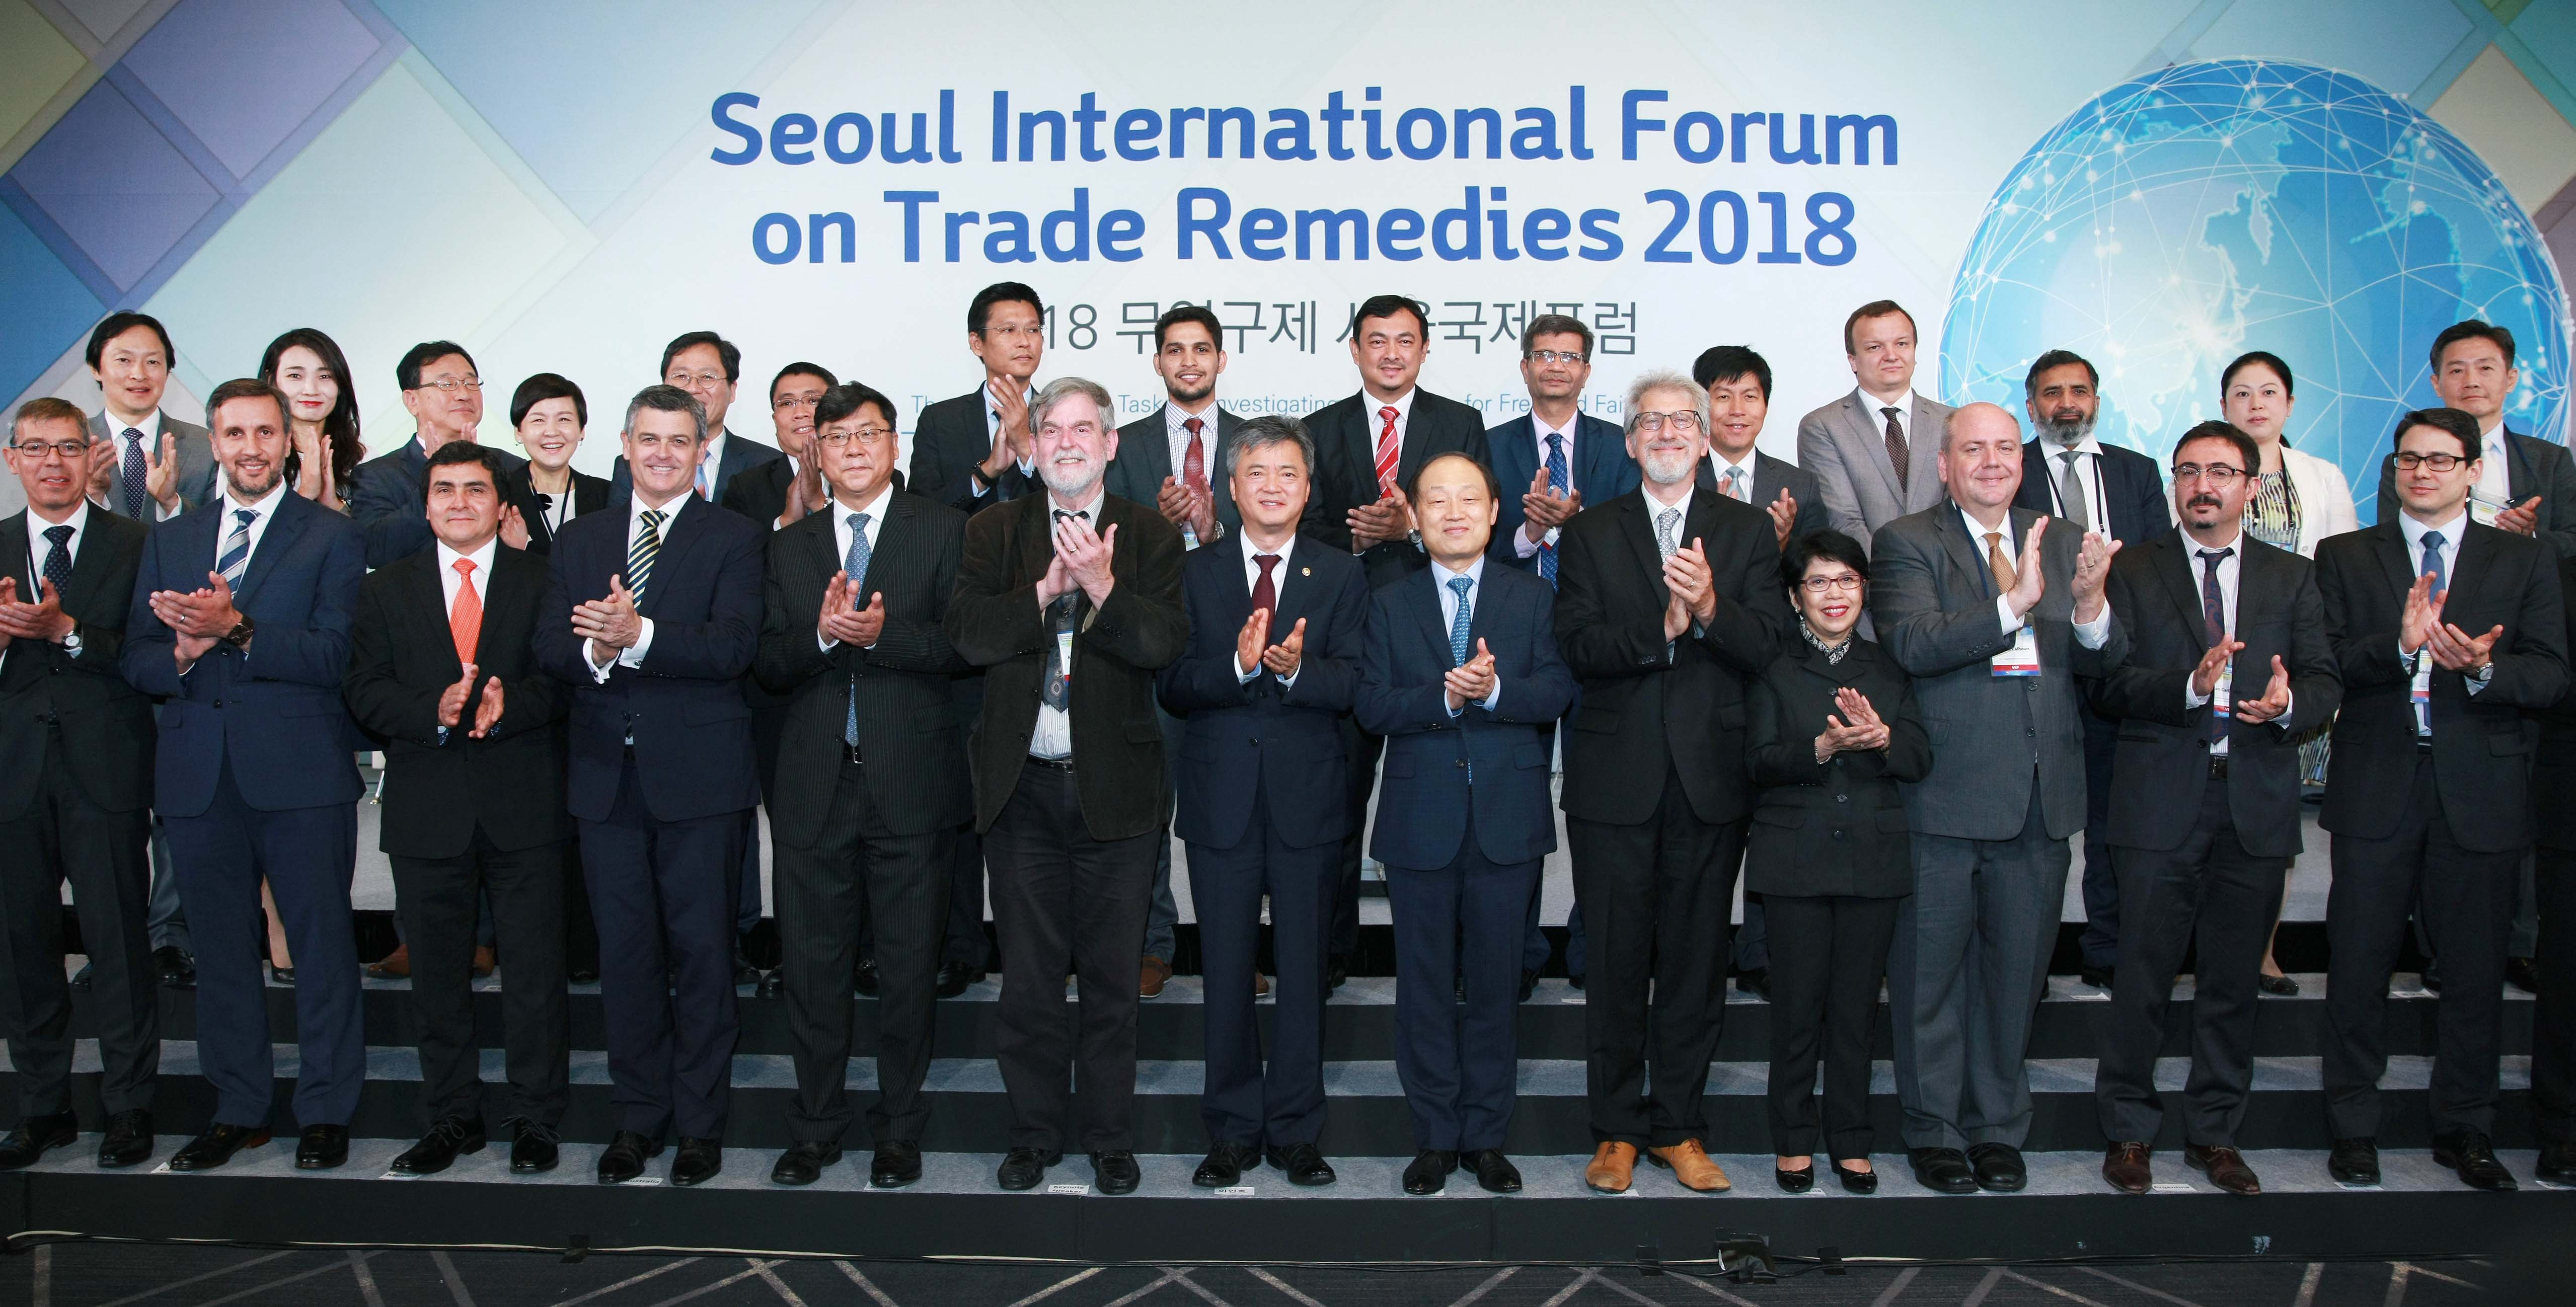 Vice Minister attends trade remedy forum Image 0